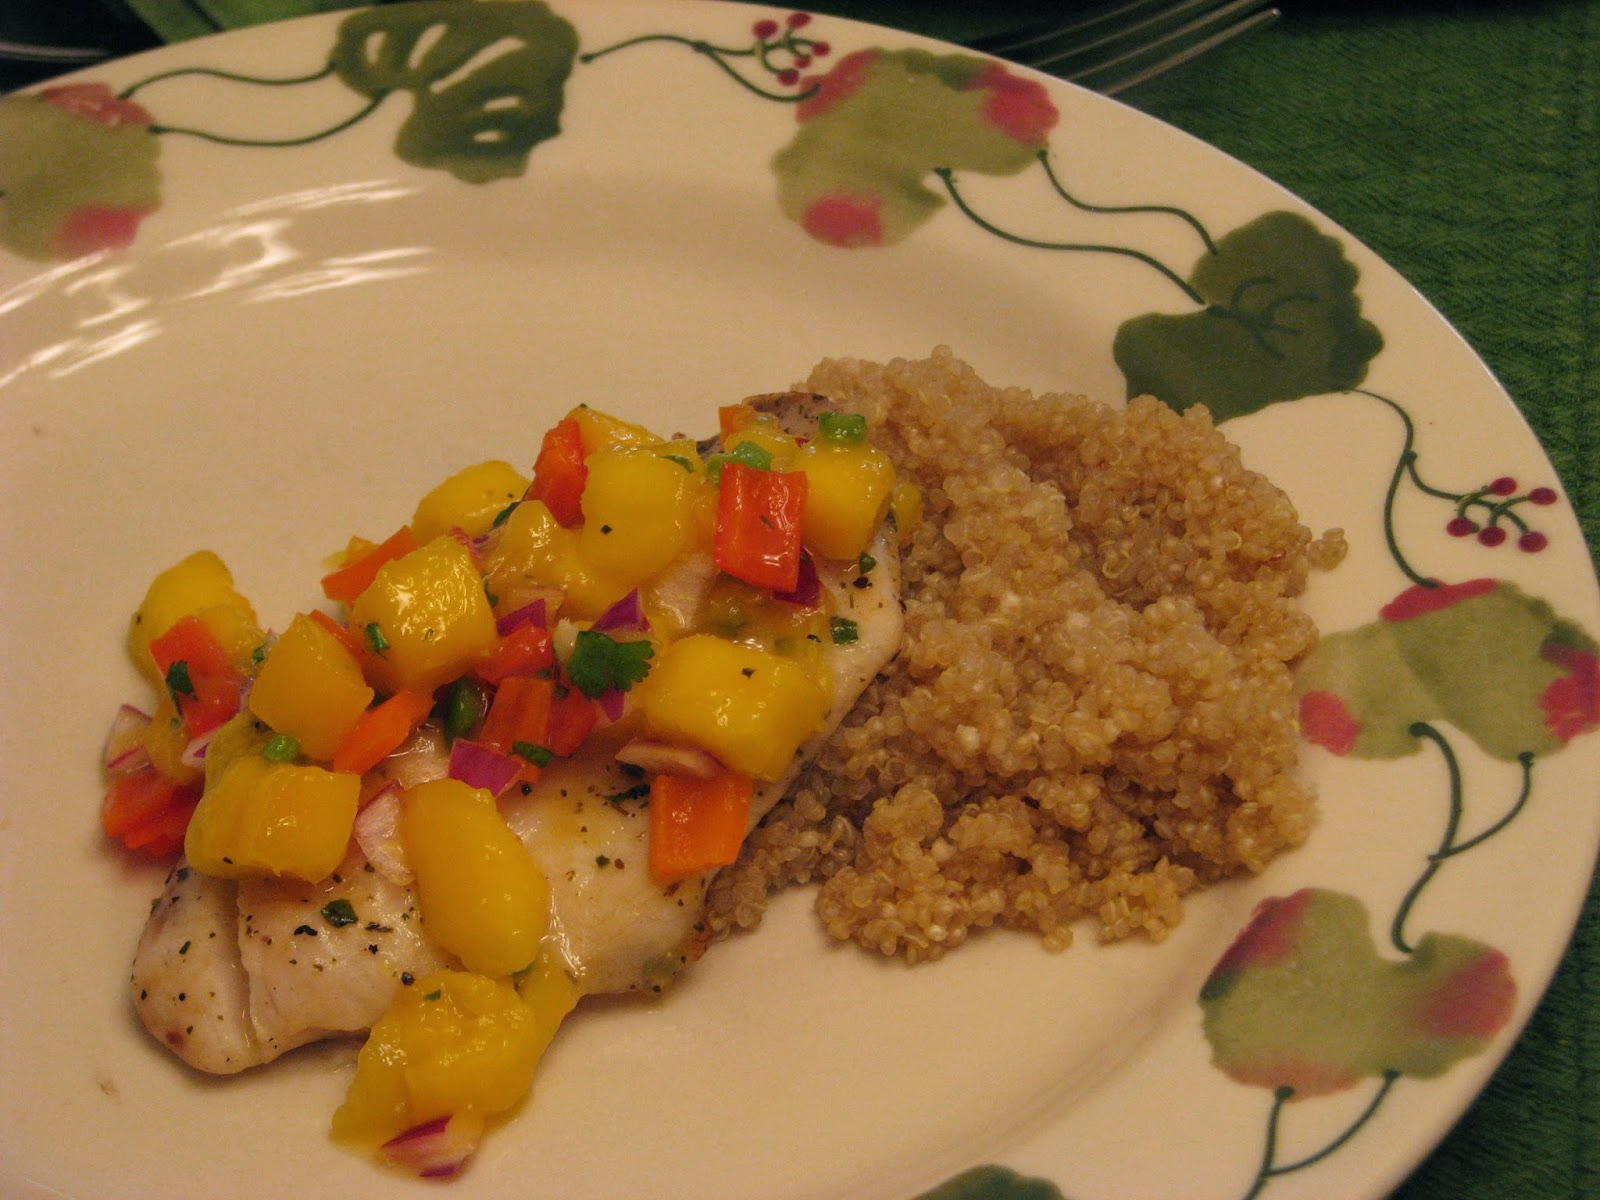 TheFultonGirls: Grilled Tilapia with Mango Salsa